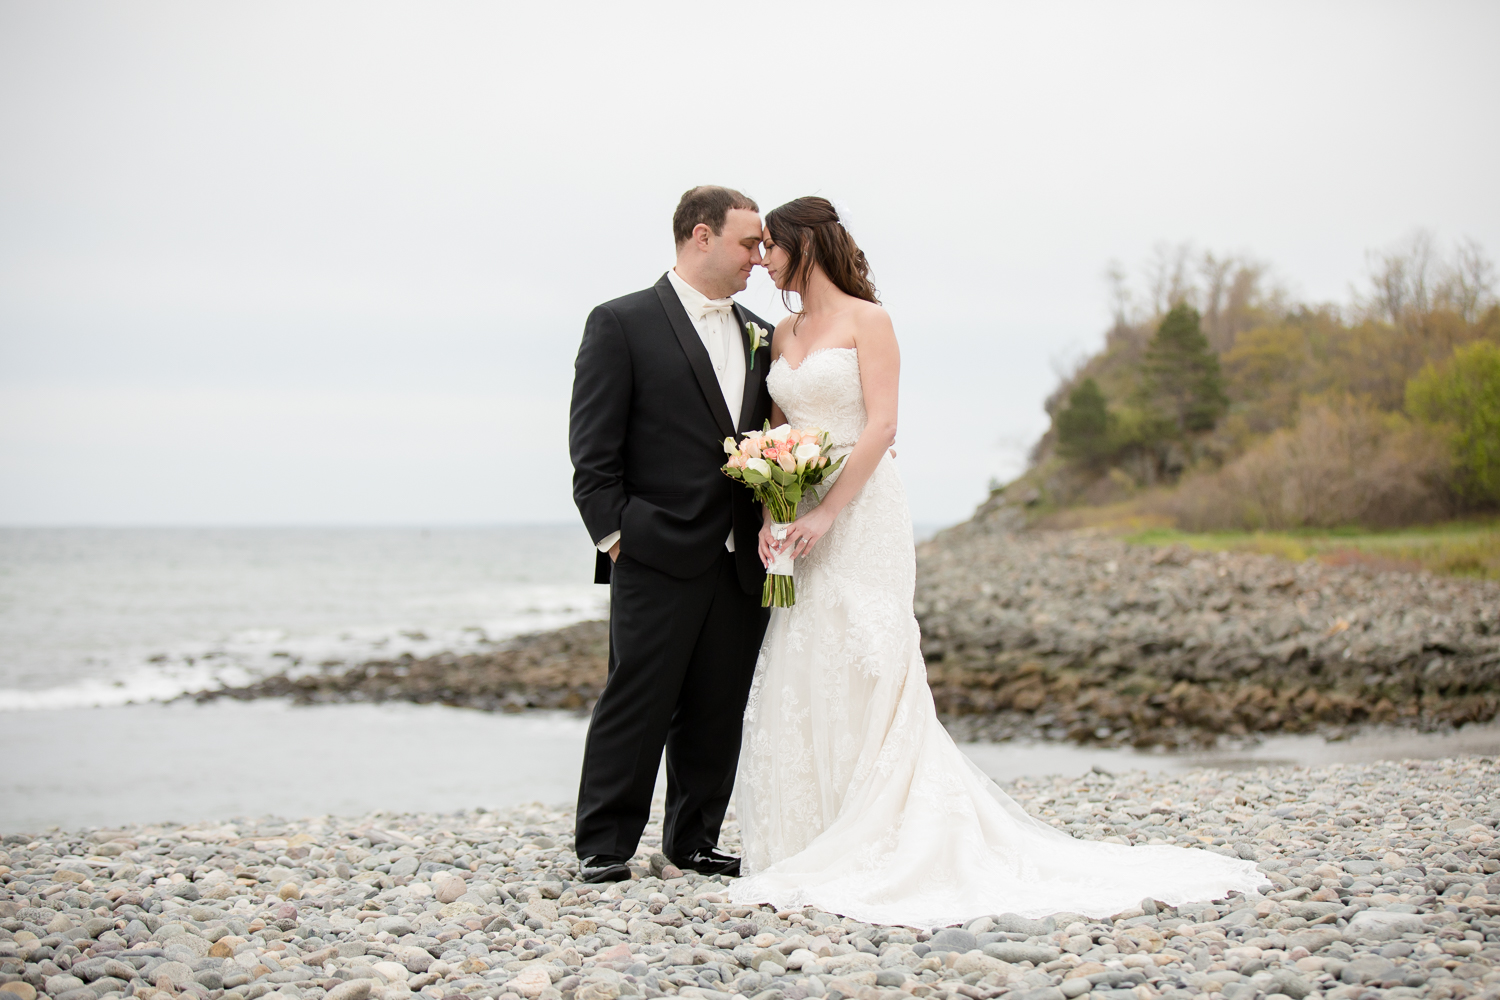 oceanview-of-nahant-wedding-26-north-studios-34.jpg